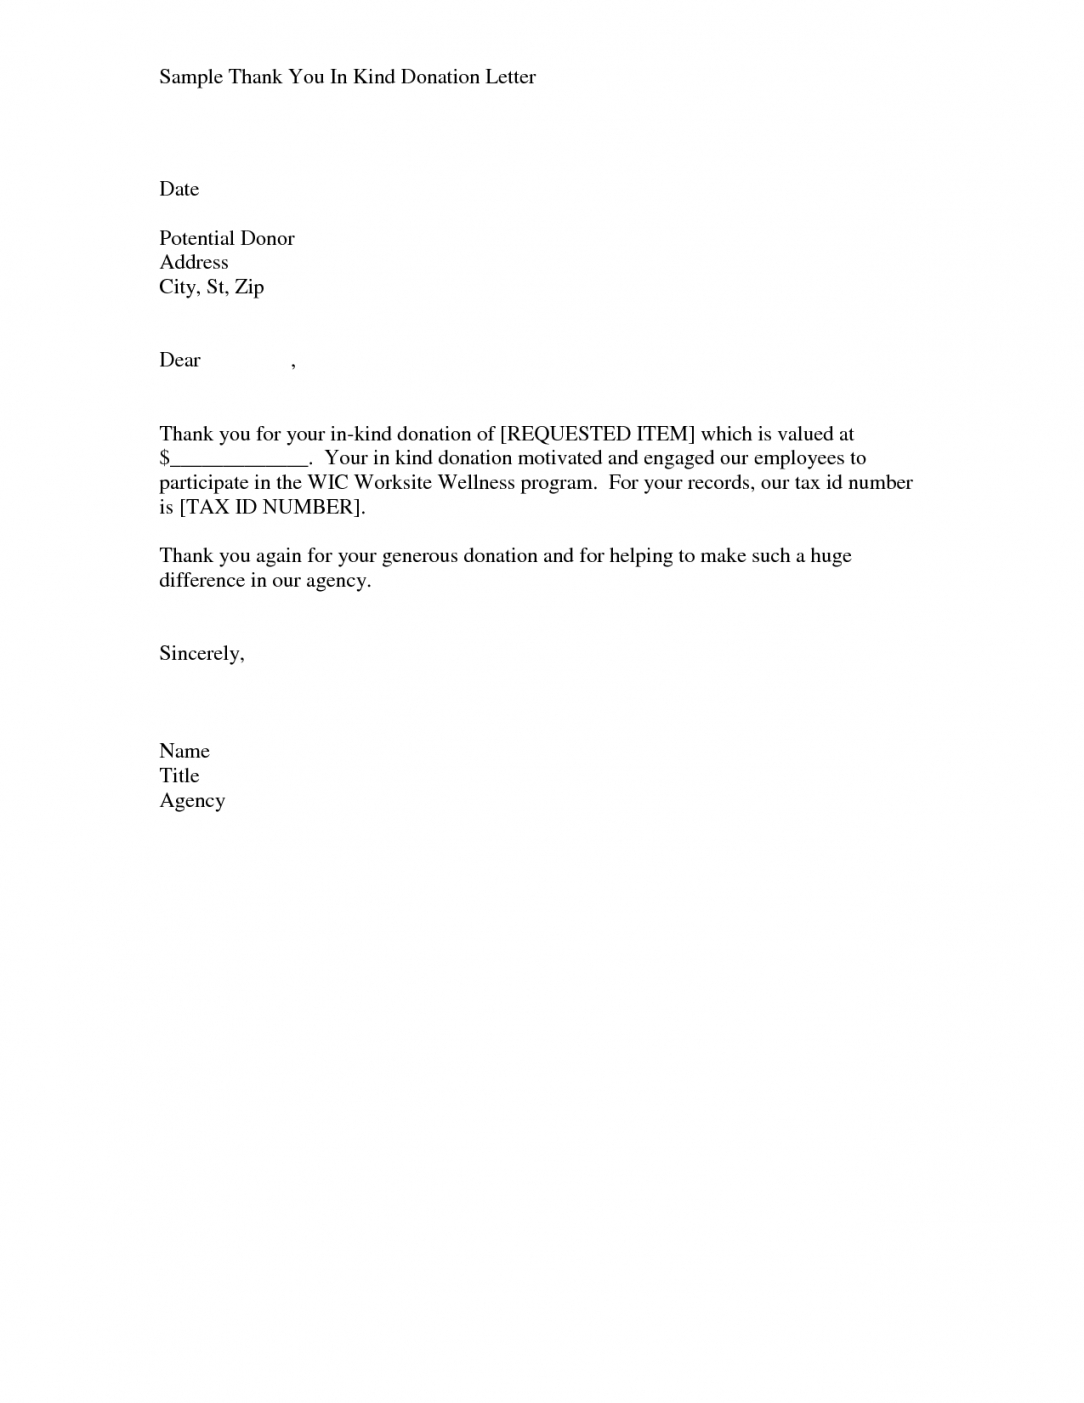 editable thanks letter for non profit donation  sample in kind donation donation in kind letter template doc